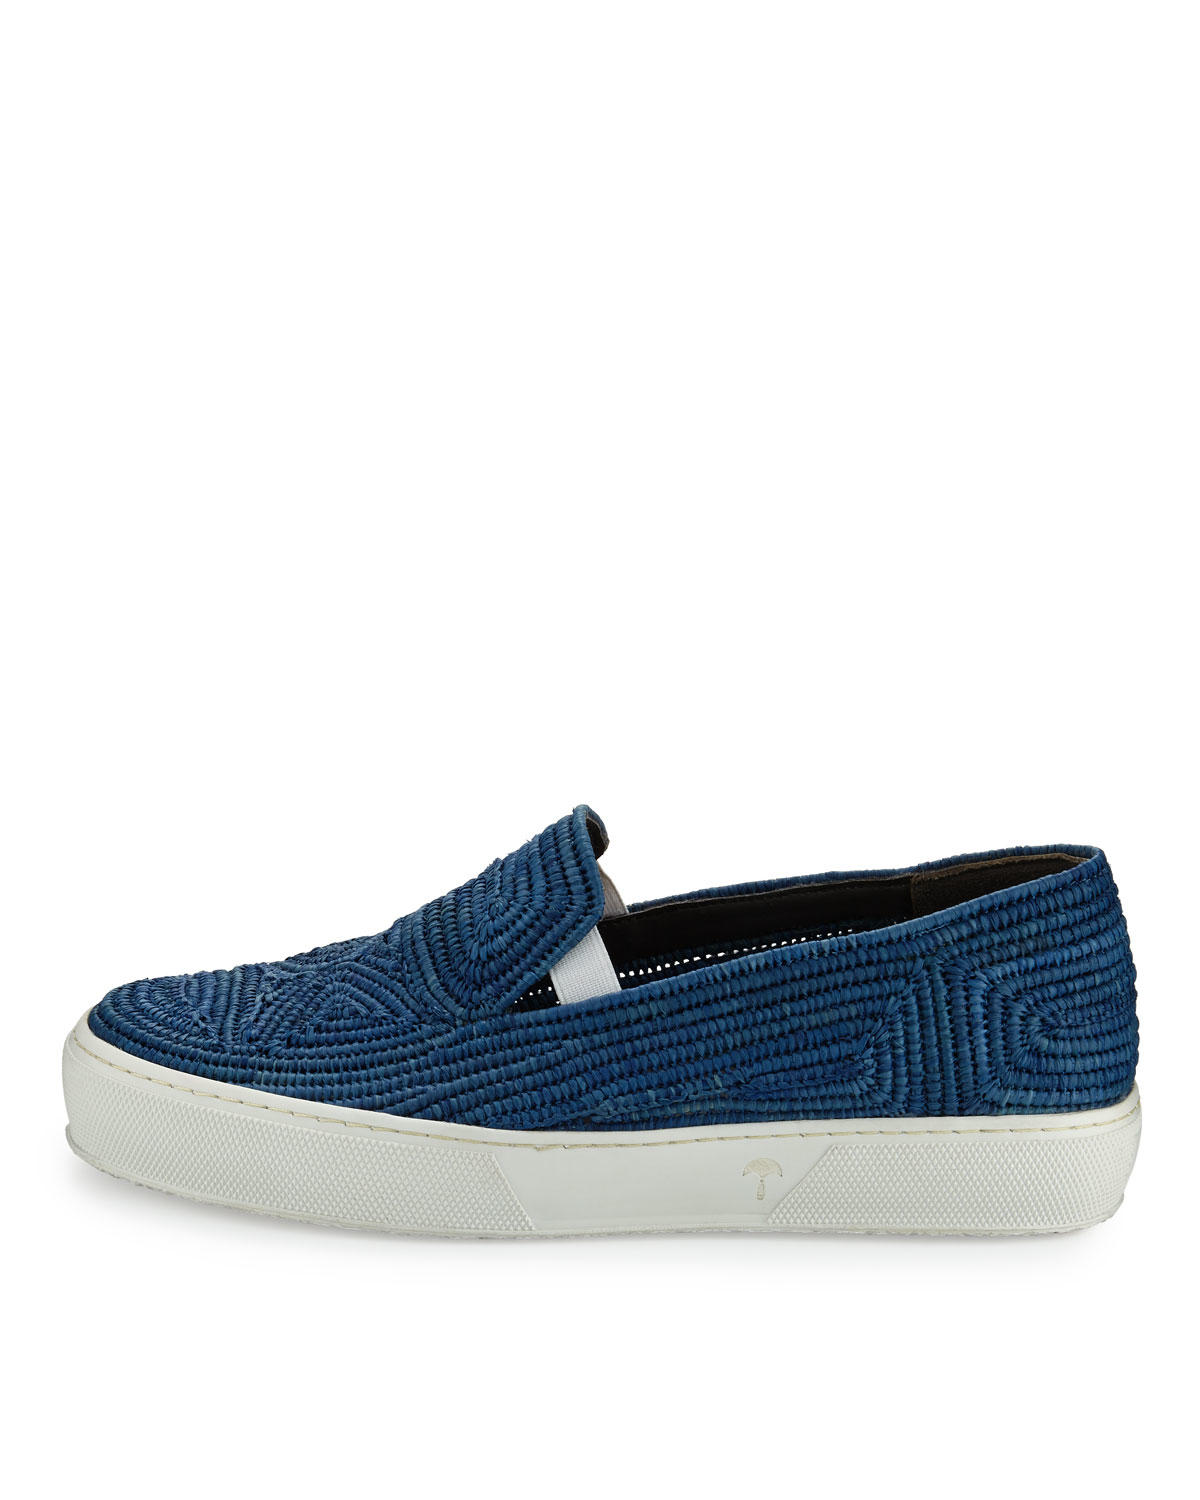 quality design d9b84 e2df7 robert-clergerie-blue-tribal-woven-raffia-sneaker-product-1-826594096-normal.jpeg